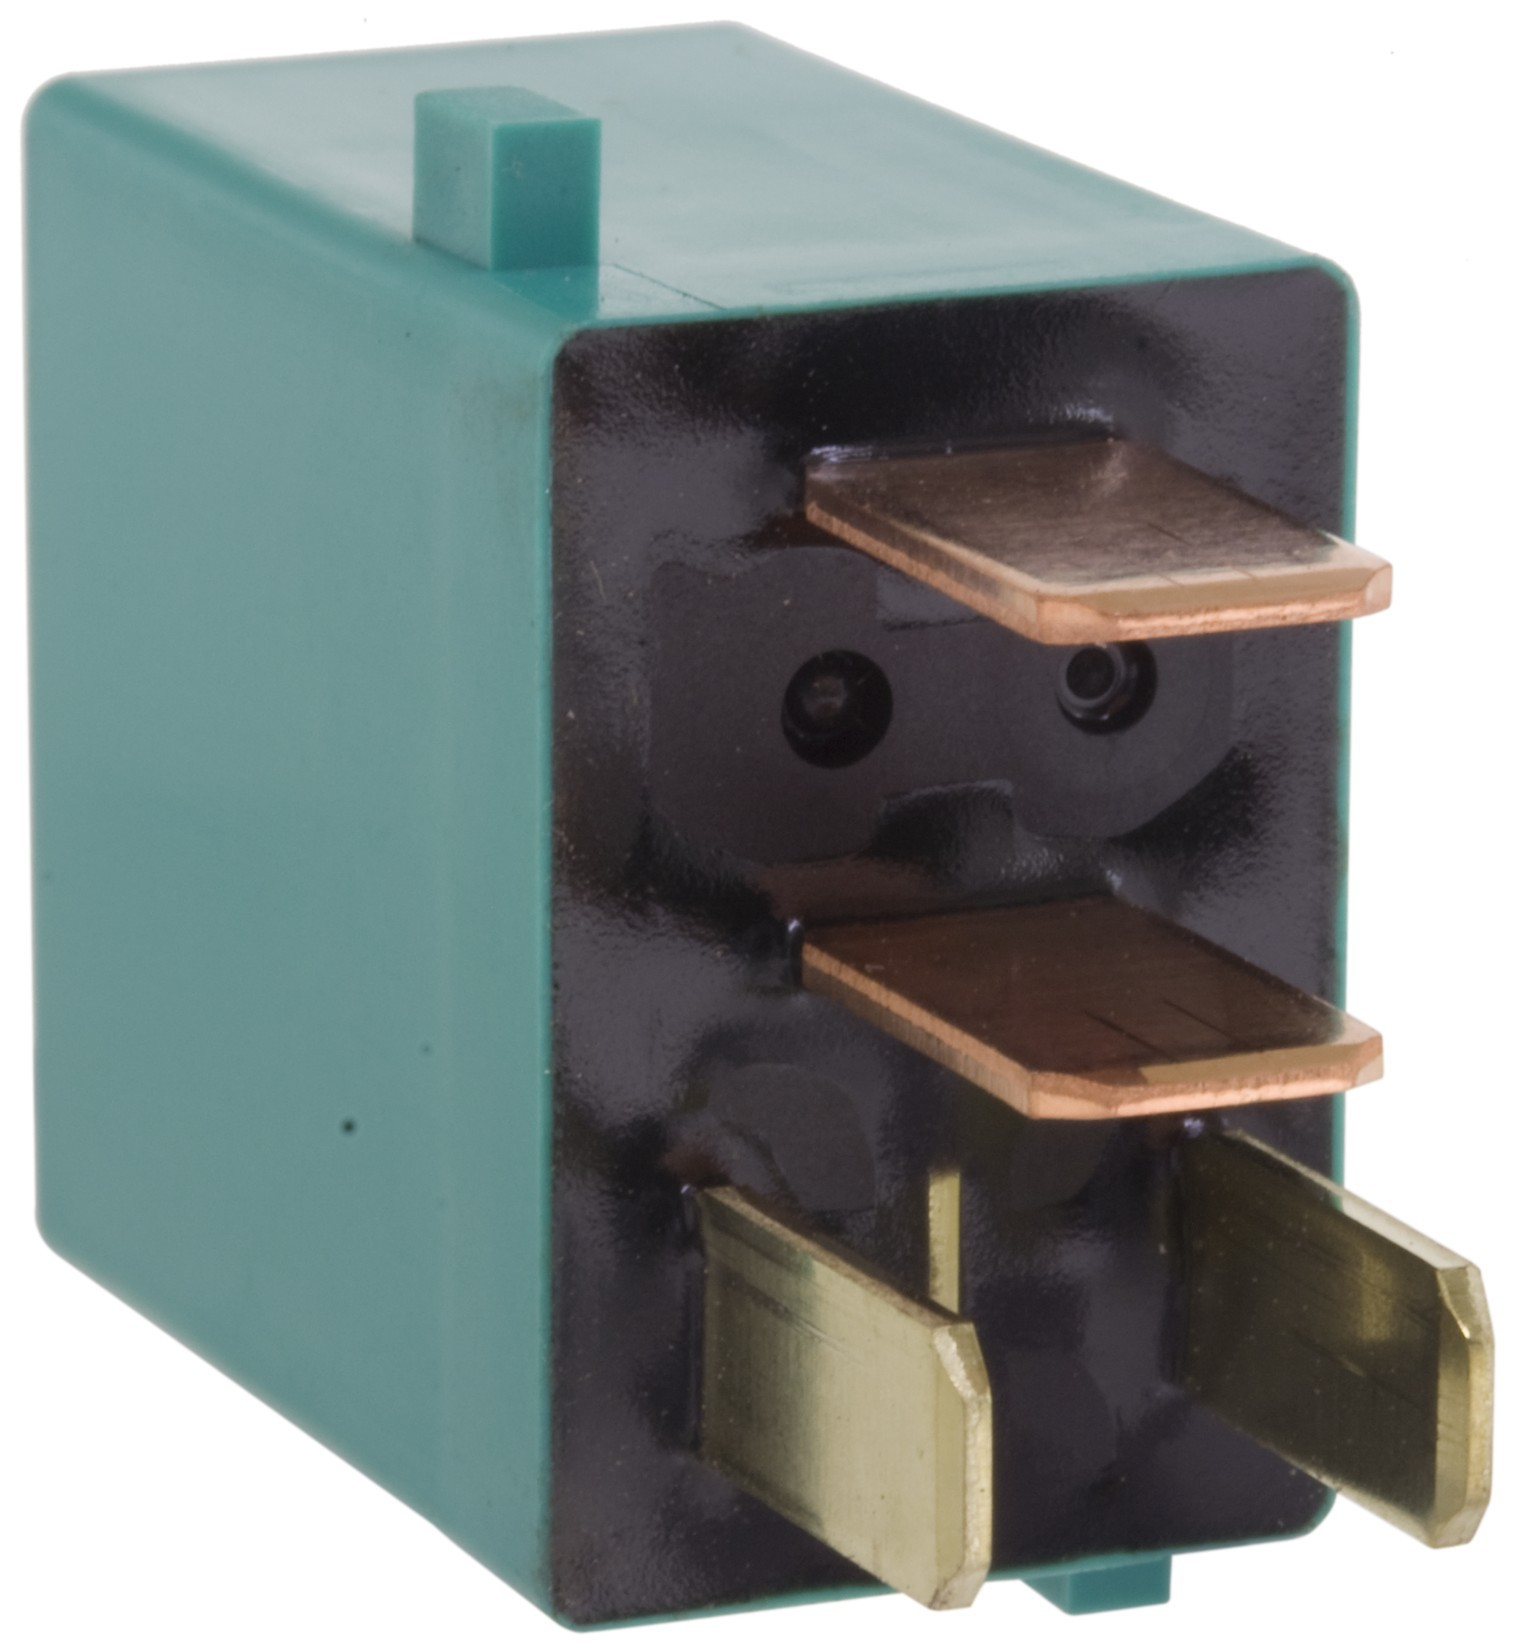 Hvac blower motor relay airtex 1r1912 ebay for Air handler blower motor relay